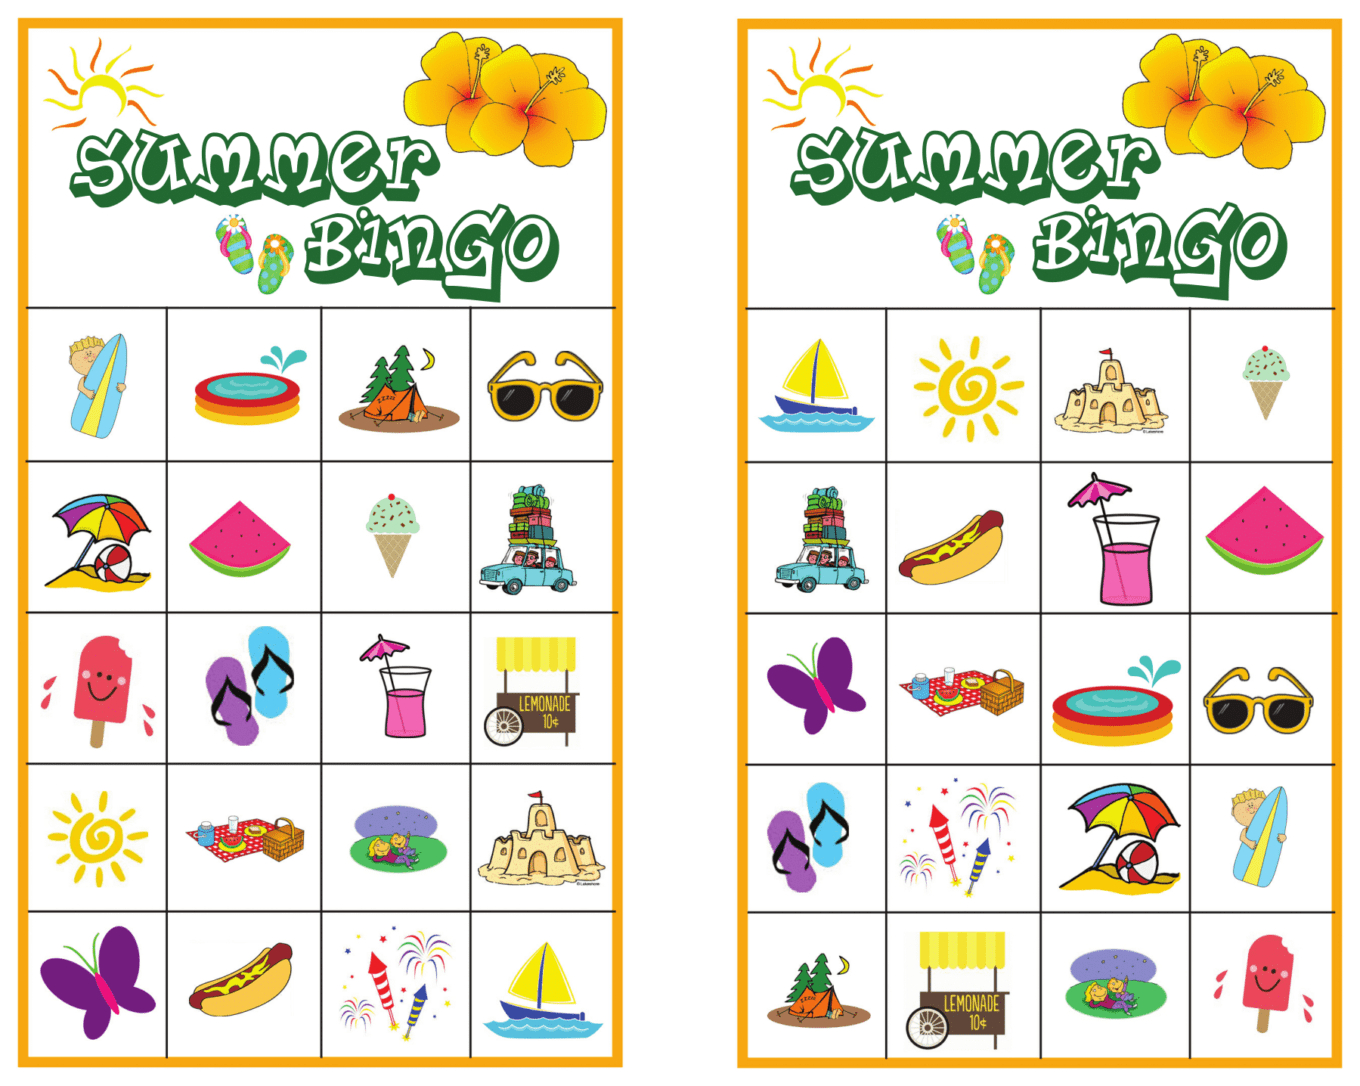 Summer Bingo Game With Free Printables | Bingo, Bingo Games